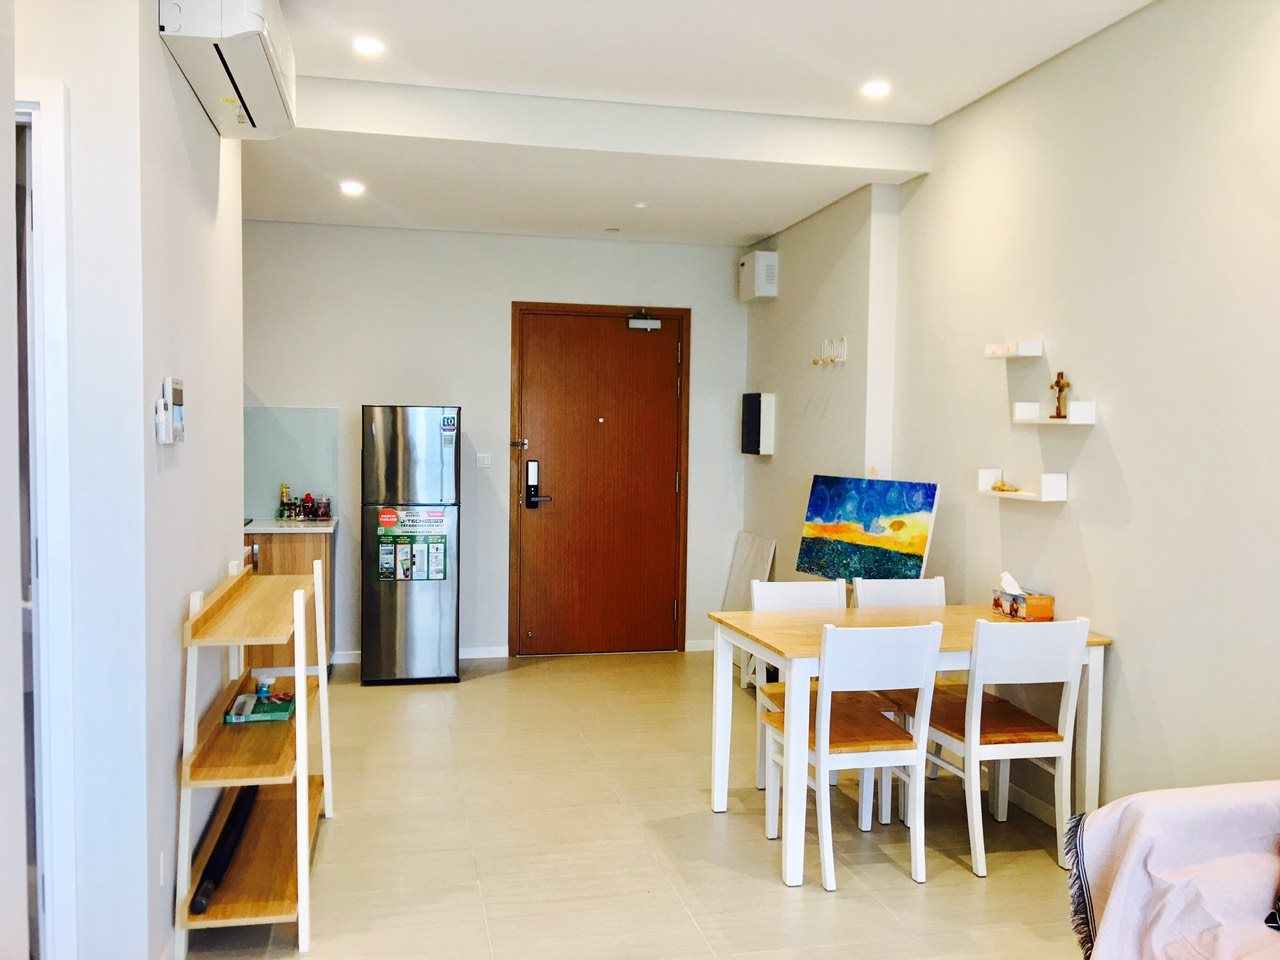 DI0060 - Diamond Island Apartment For Rent & Sale in Ho Chi Minh City - 1 bedroom